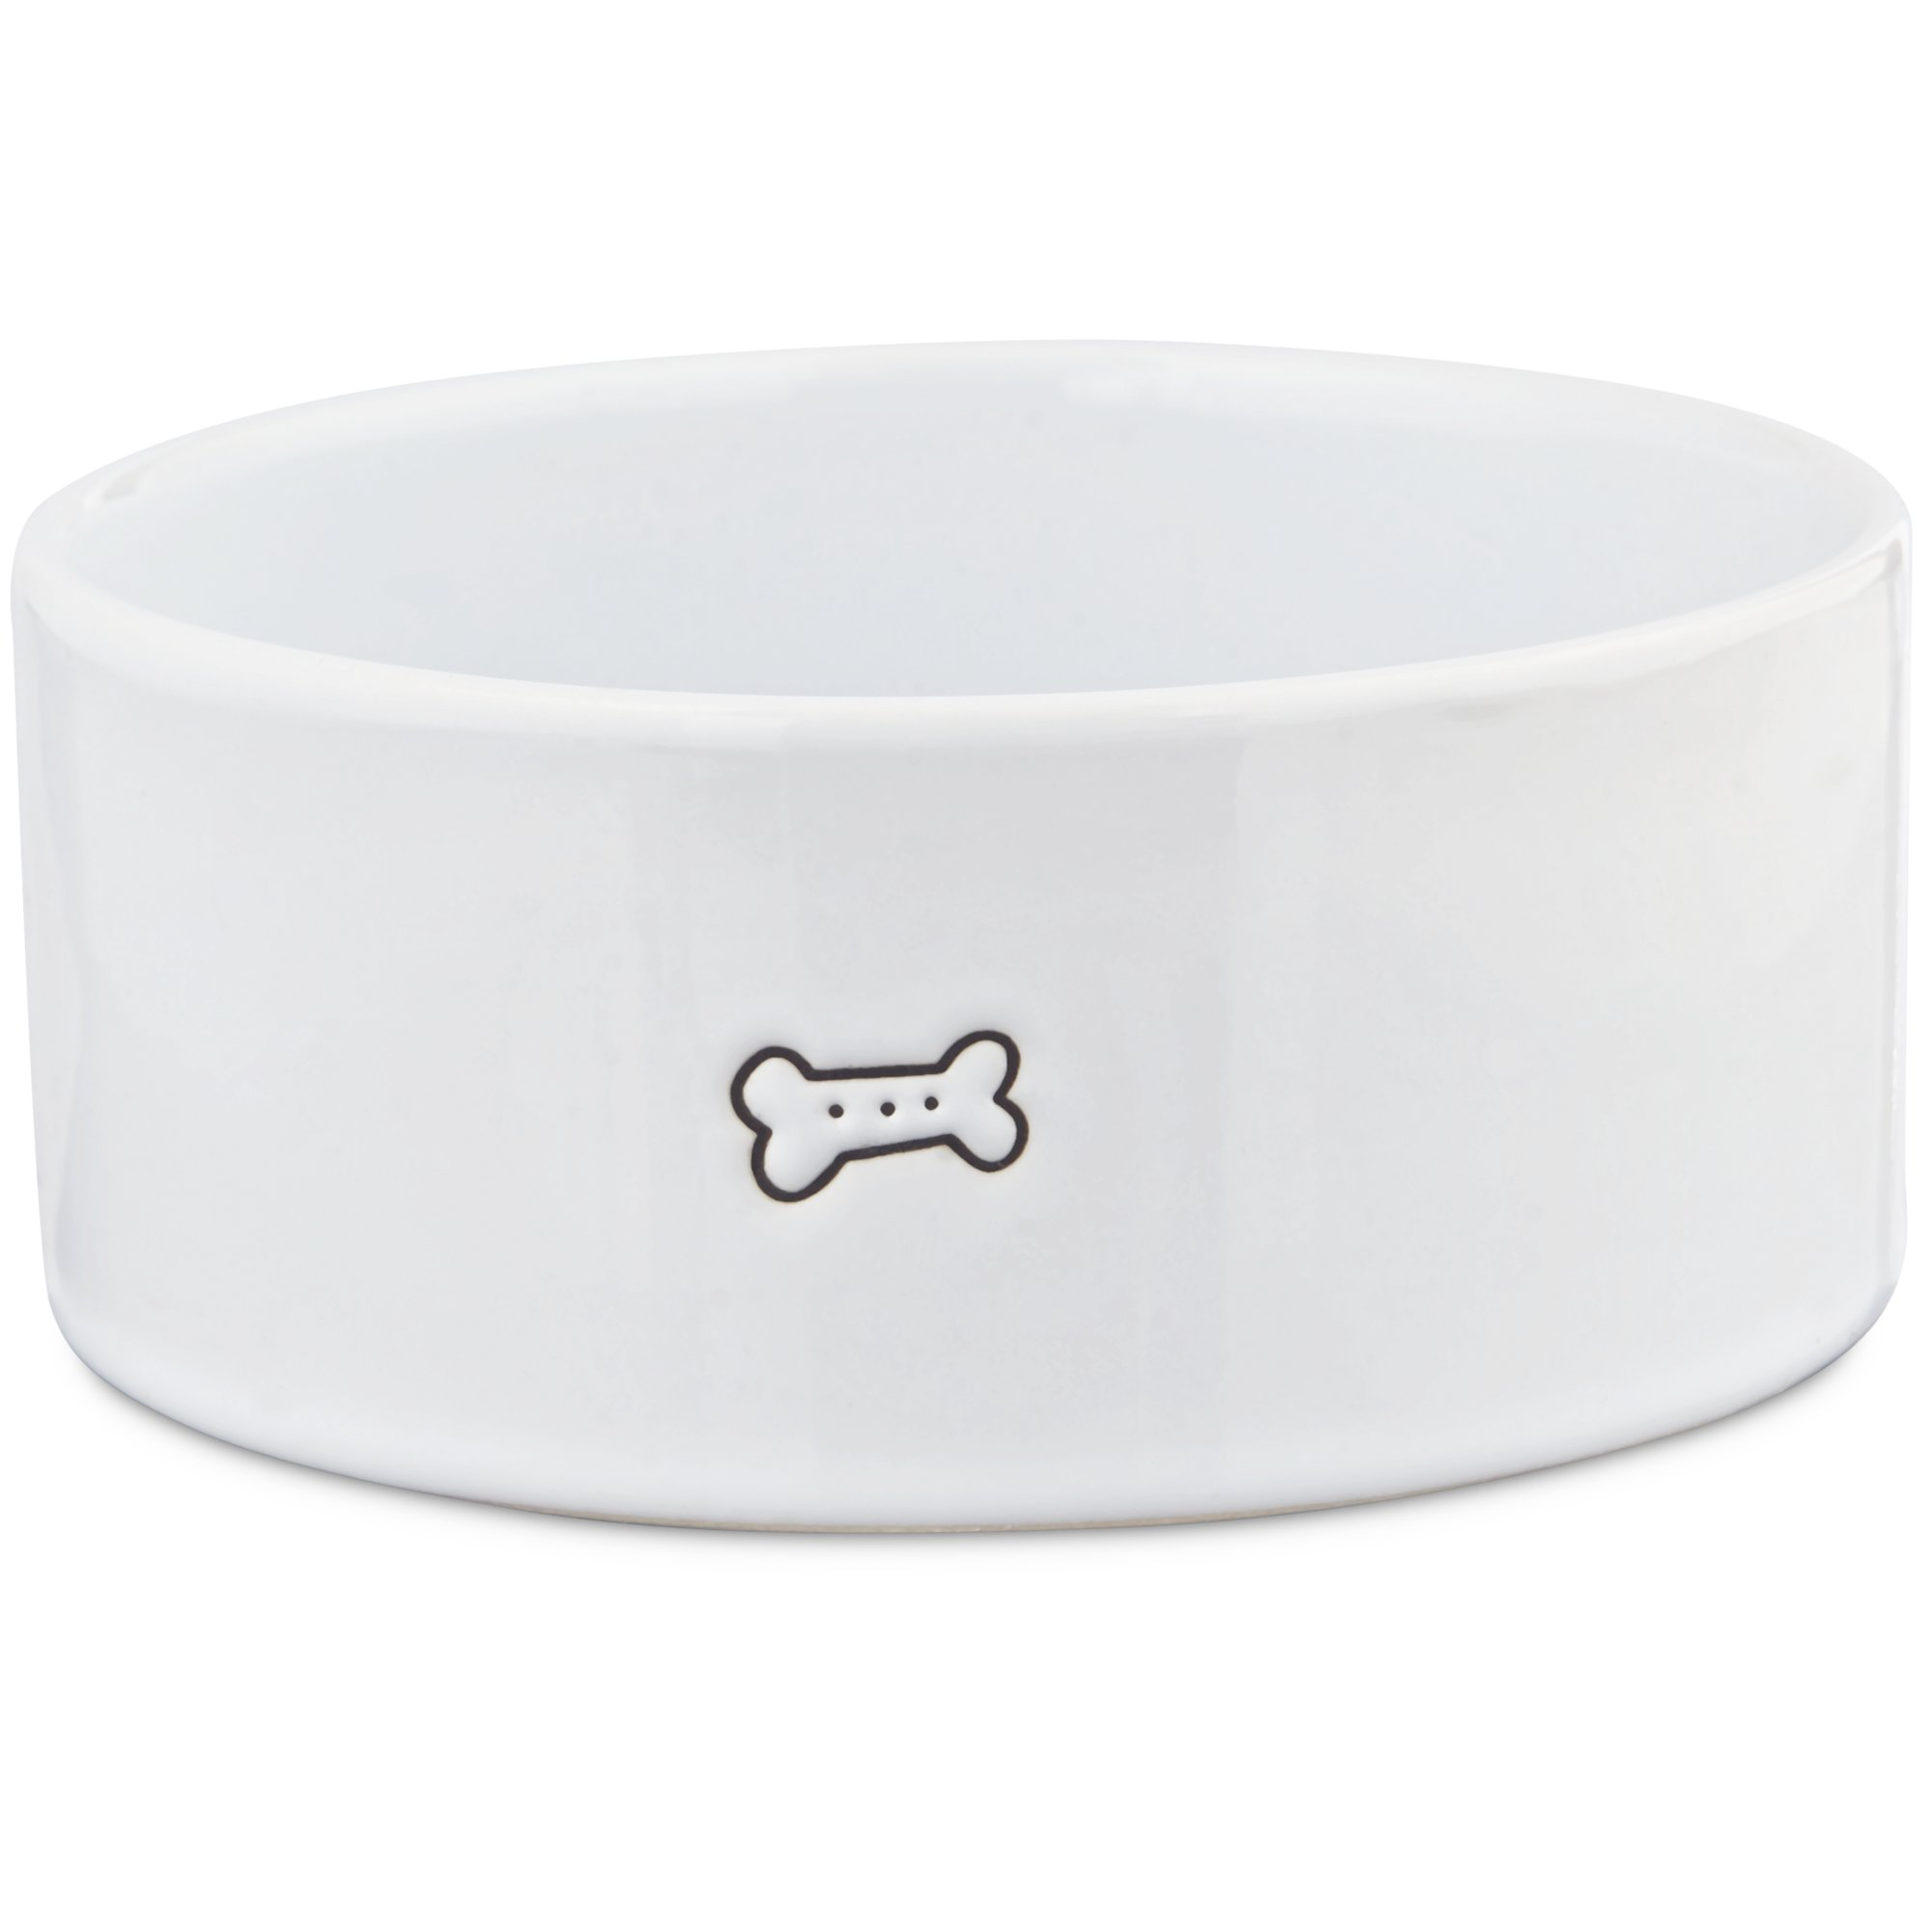 Harmony Good Dog Ceramic Dog Bowl Petco